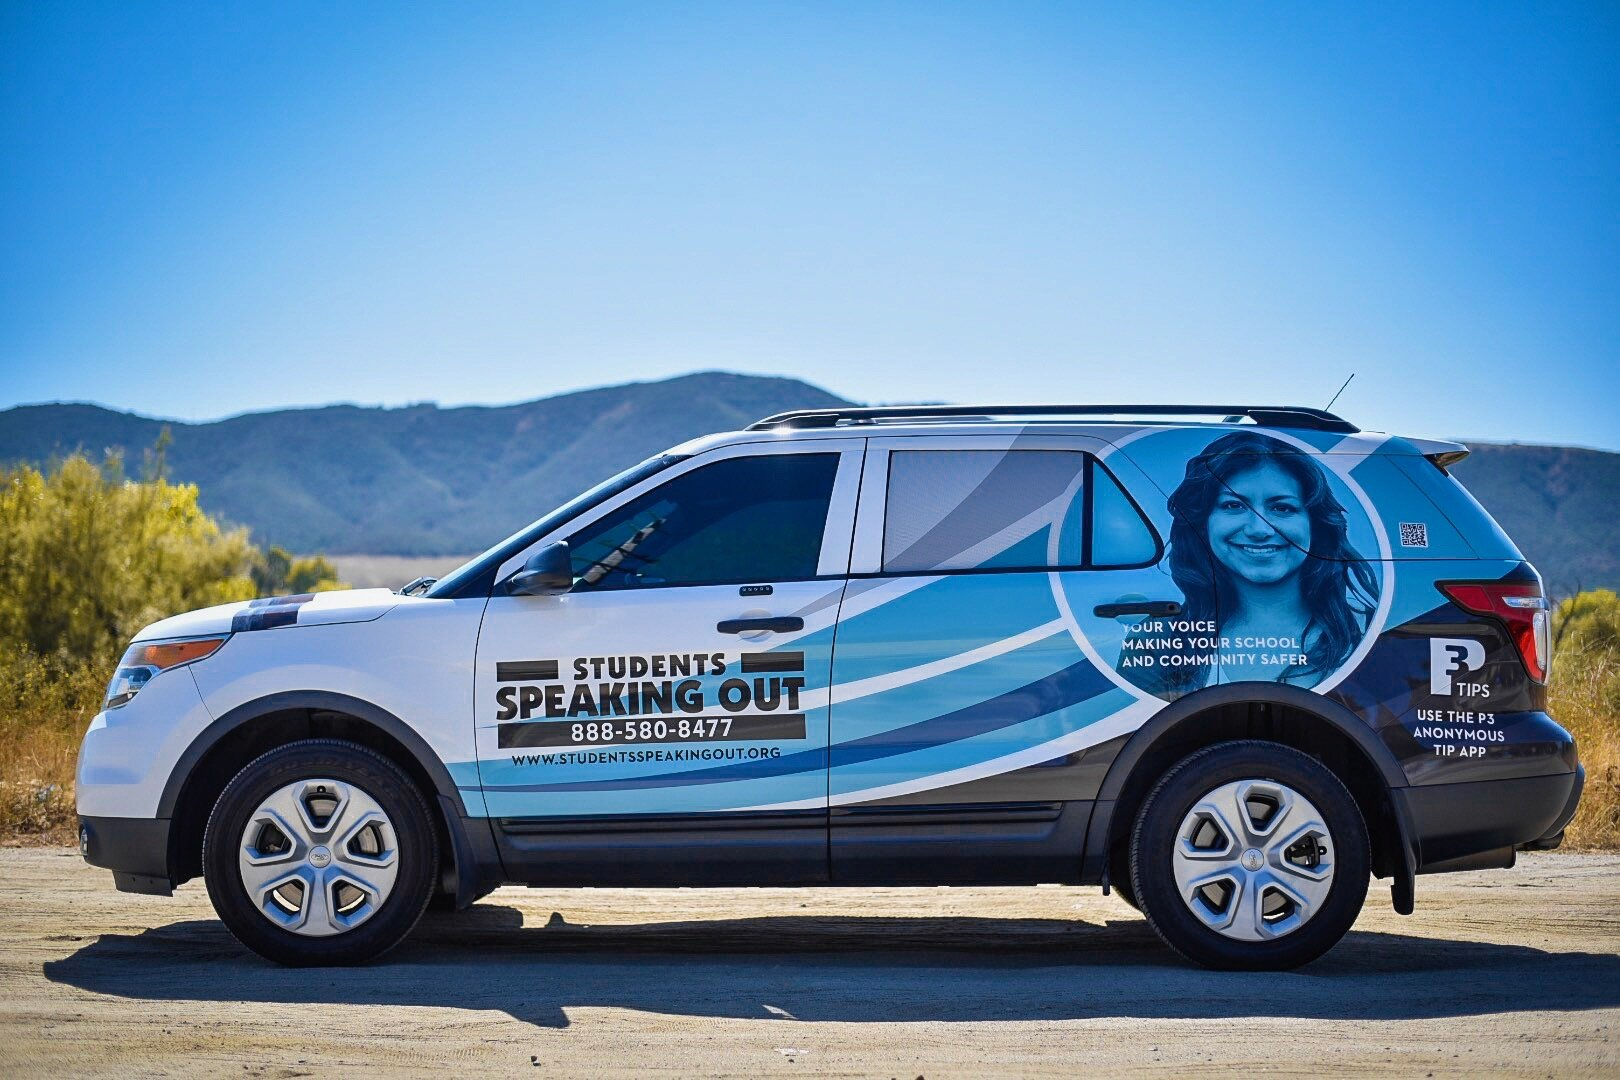 Watch for the Students Speaking Out vehicle at your school.